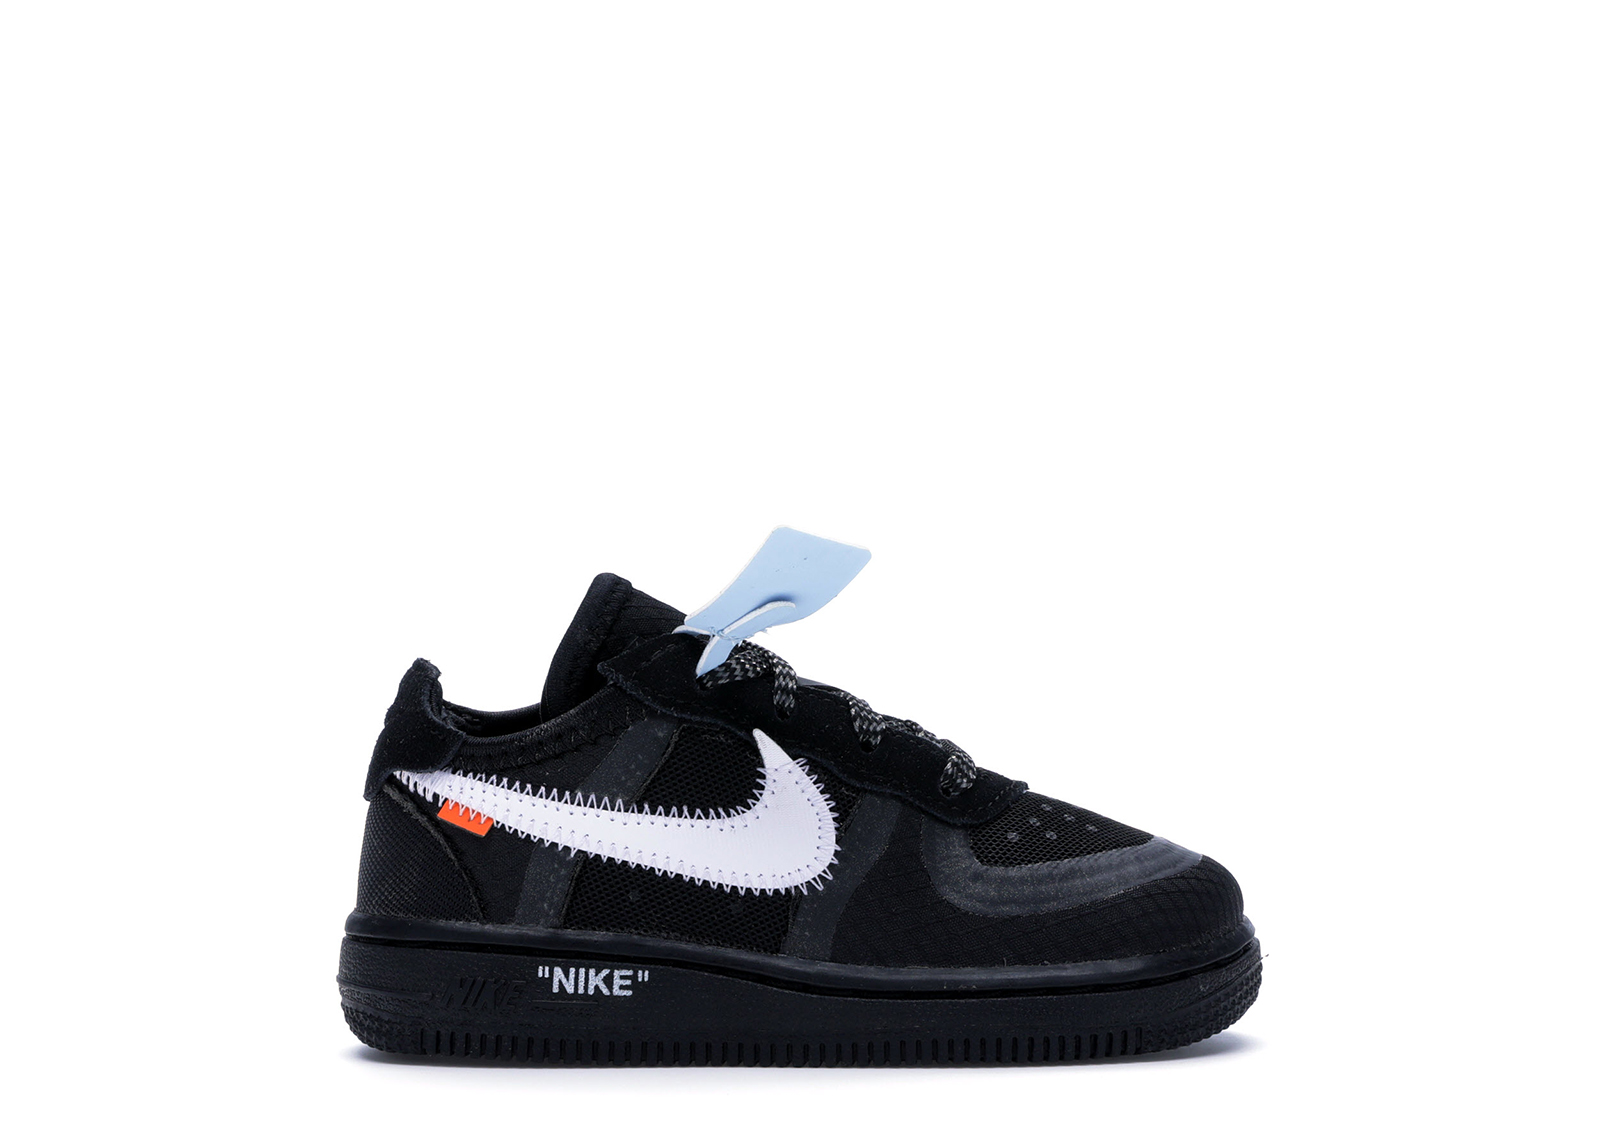 Nike Air Force 1 Low Off-White Black White (TD)